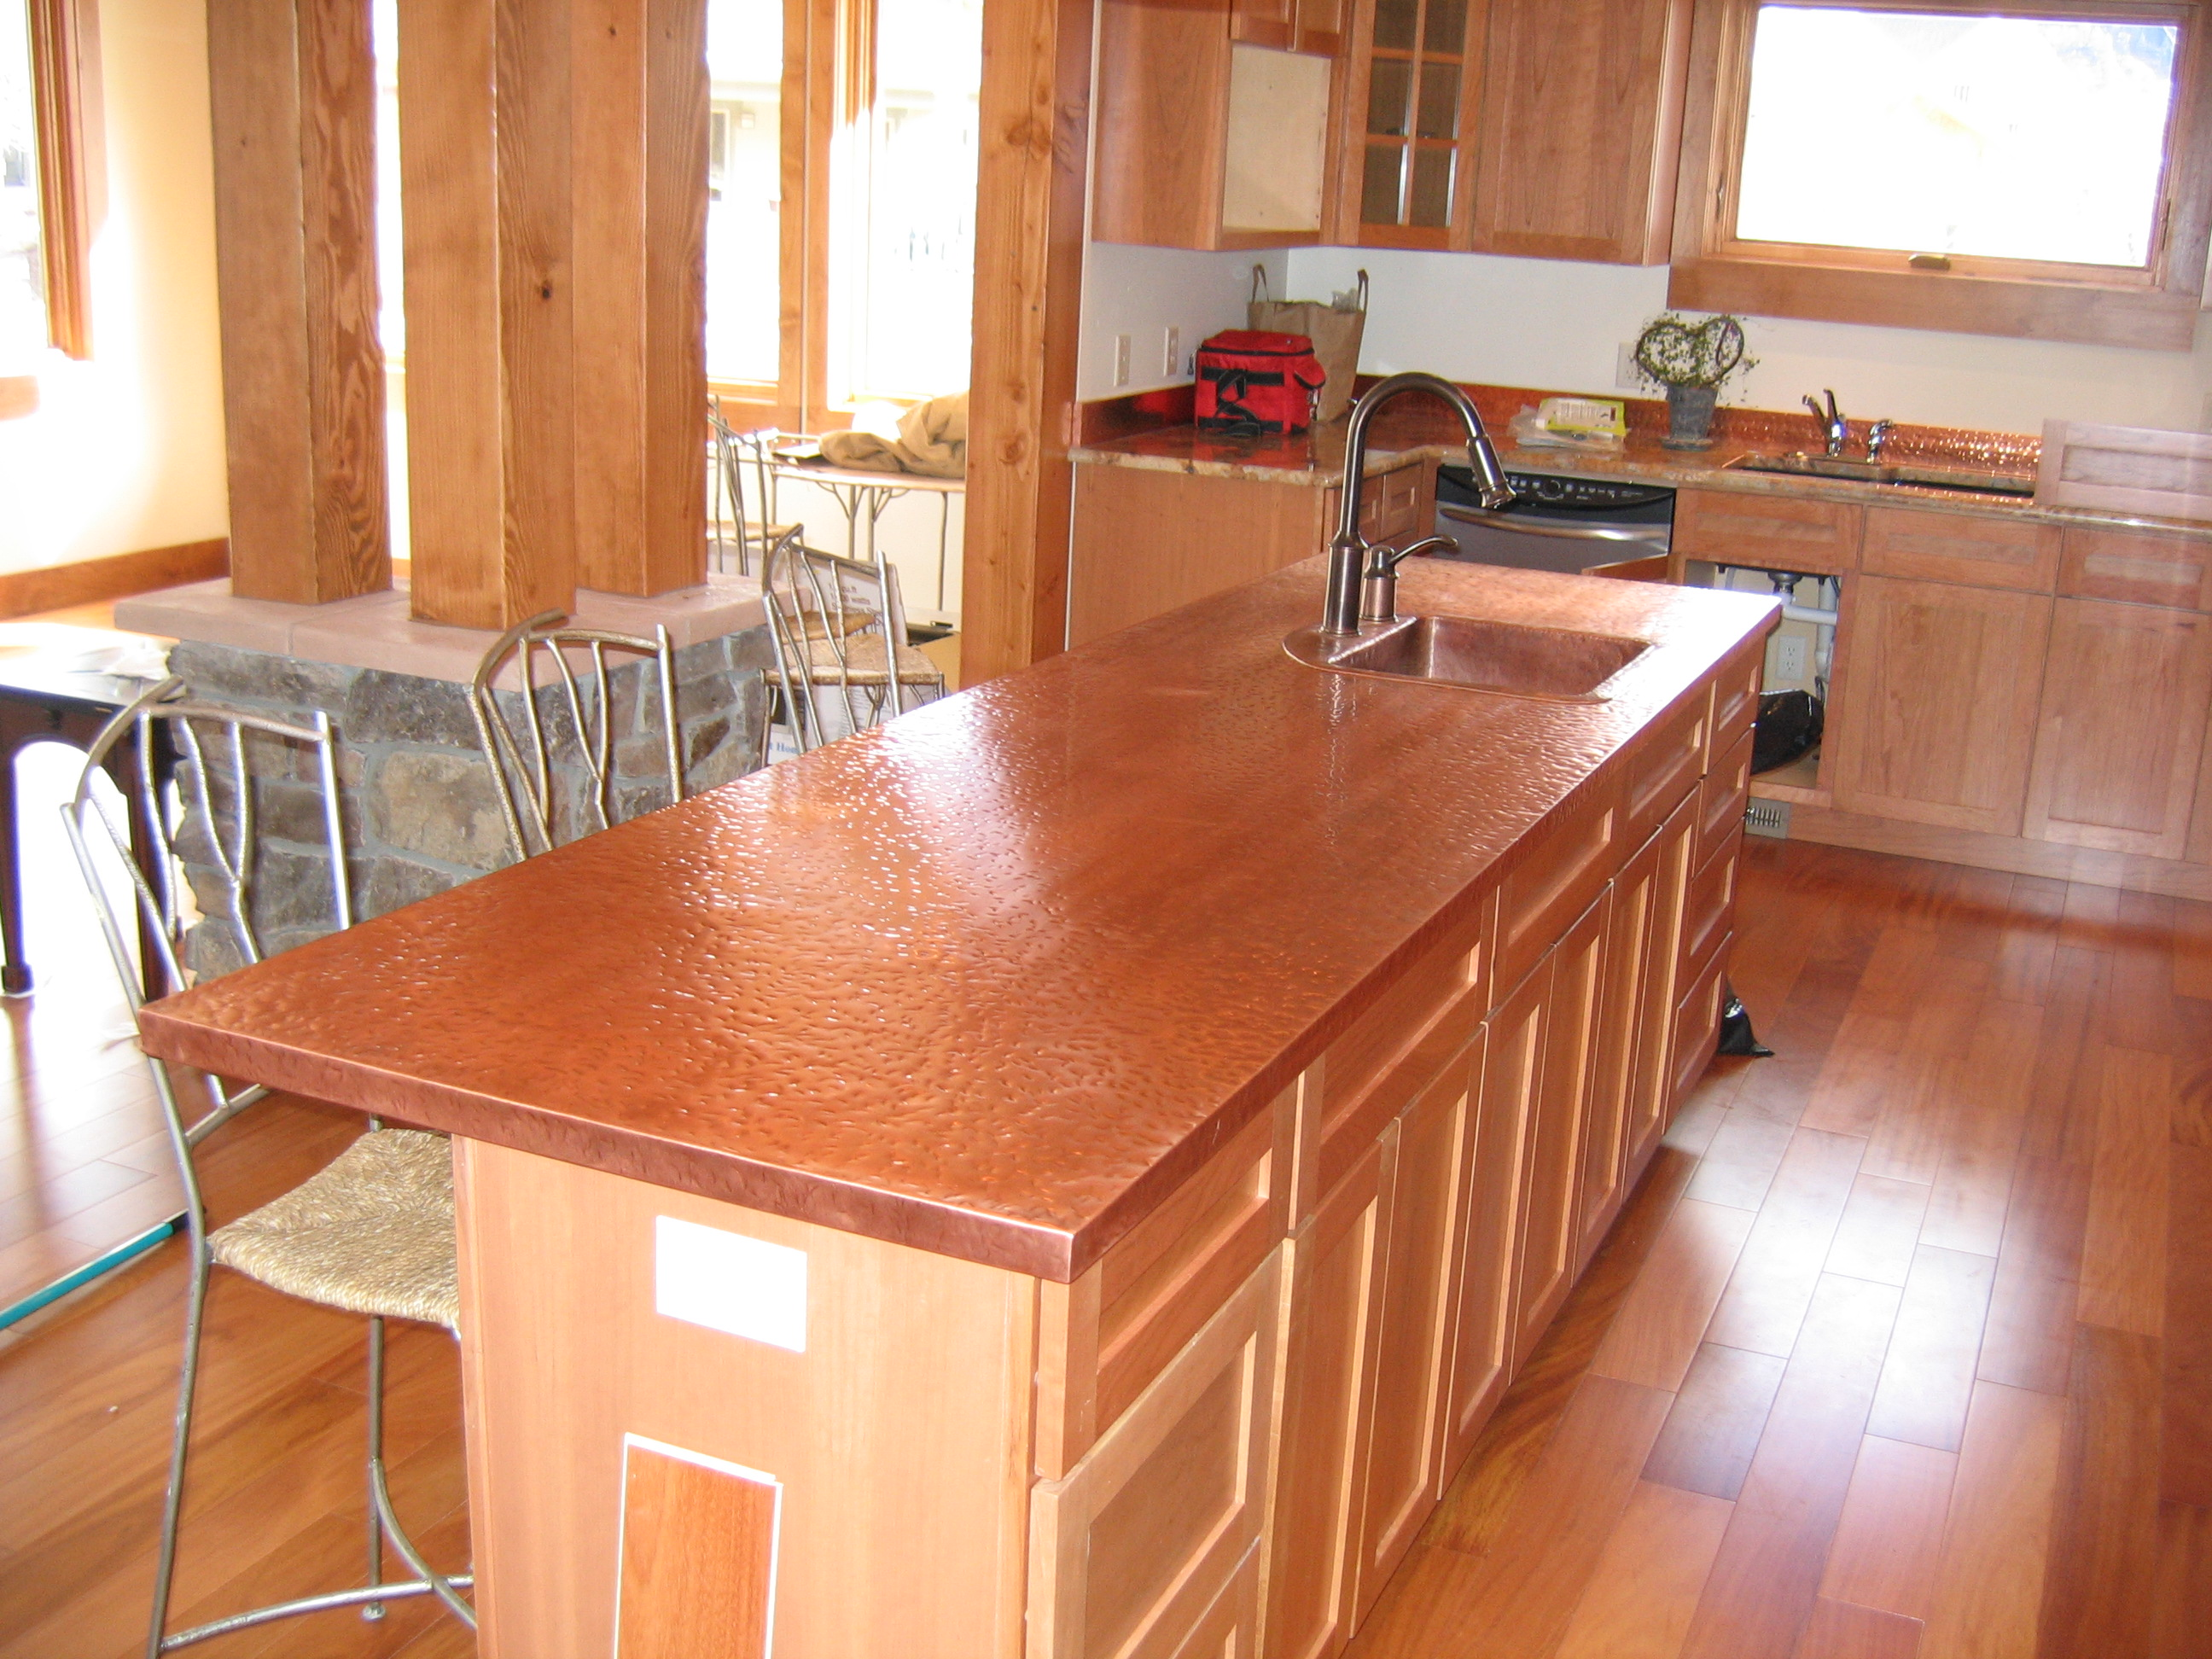 Copper Countertops Cost Installed Plus Pros And Cons Of: copper countertops cost